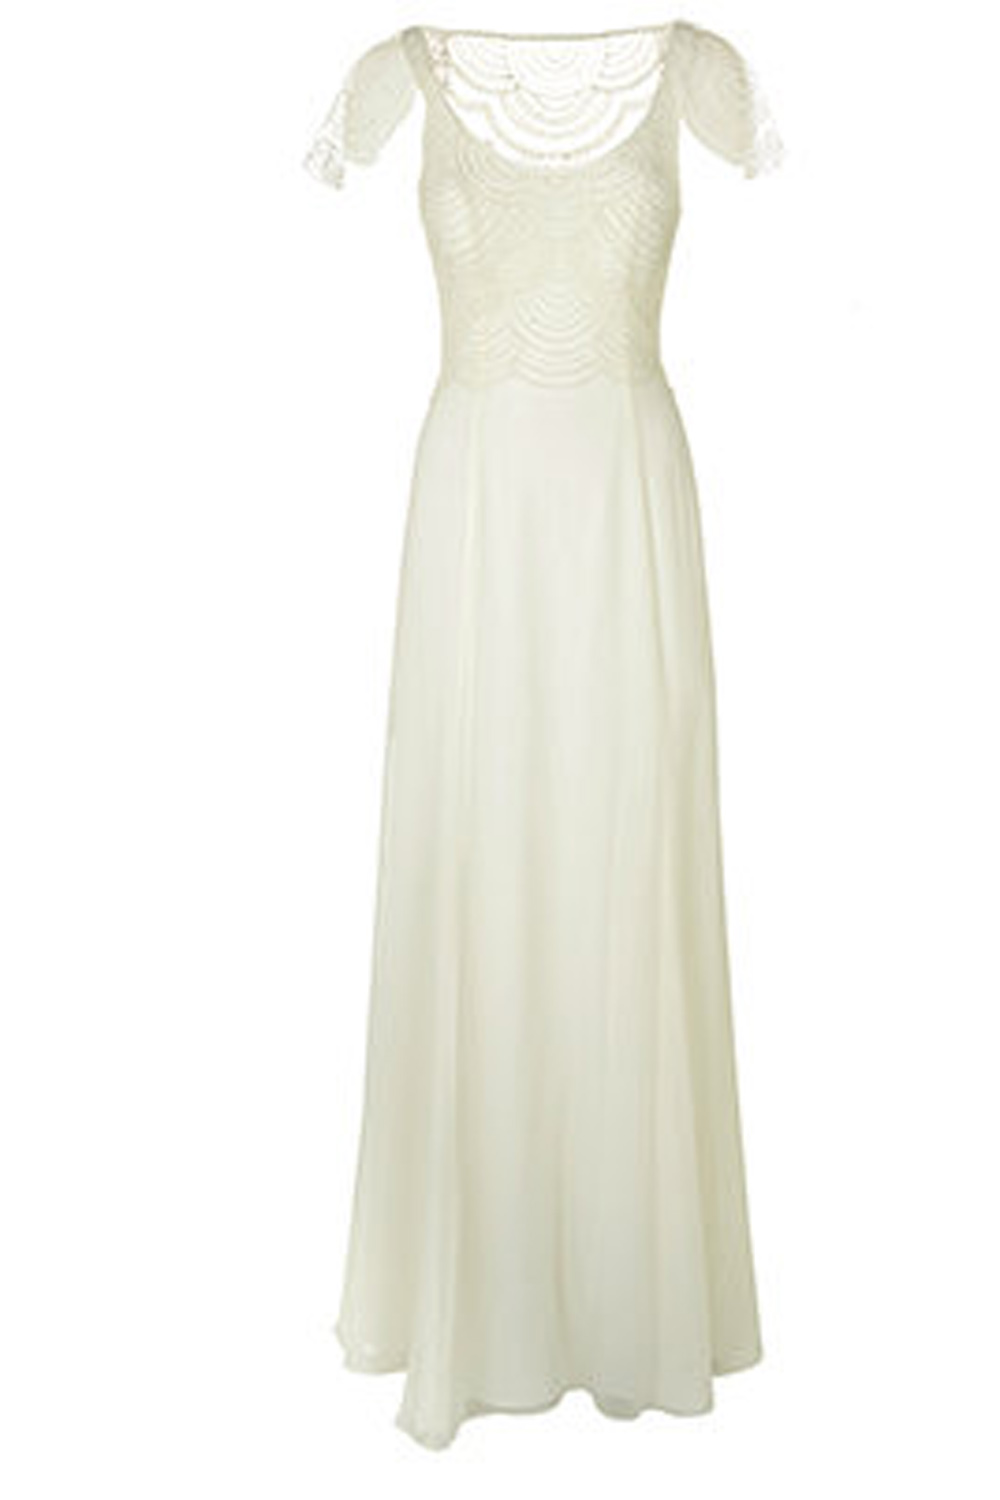 High street wedding dresses monsoon dress 299 page 6 for Wedding dresses eau claire wi